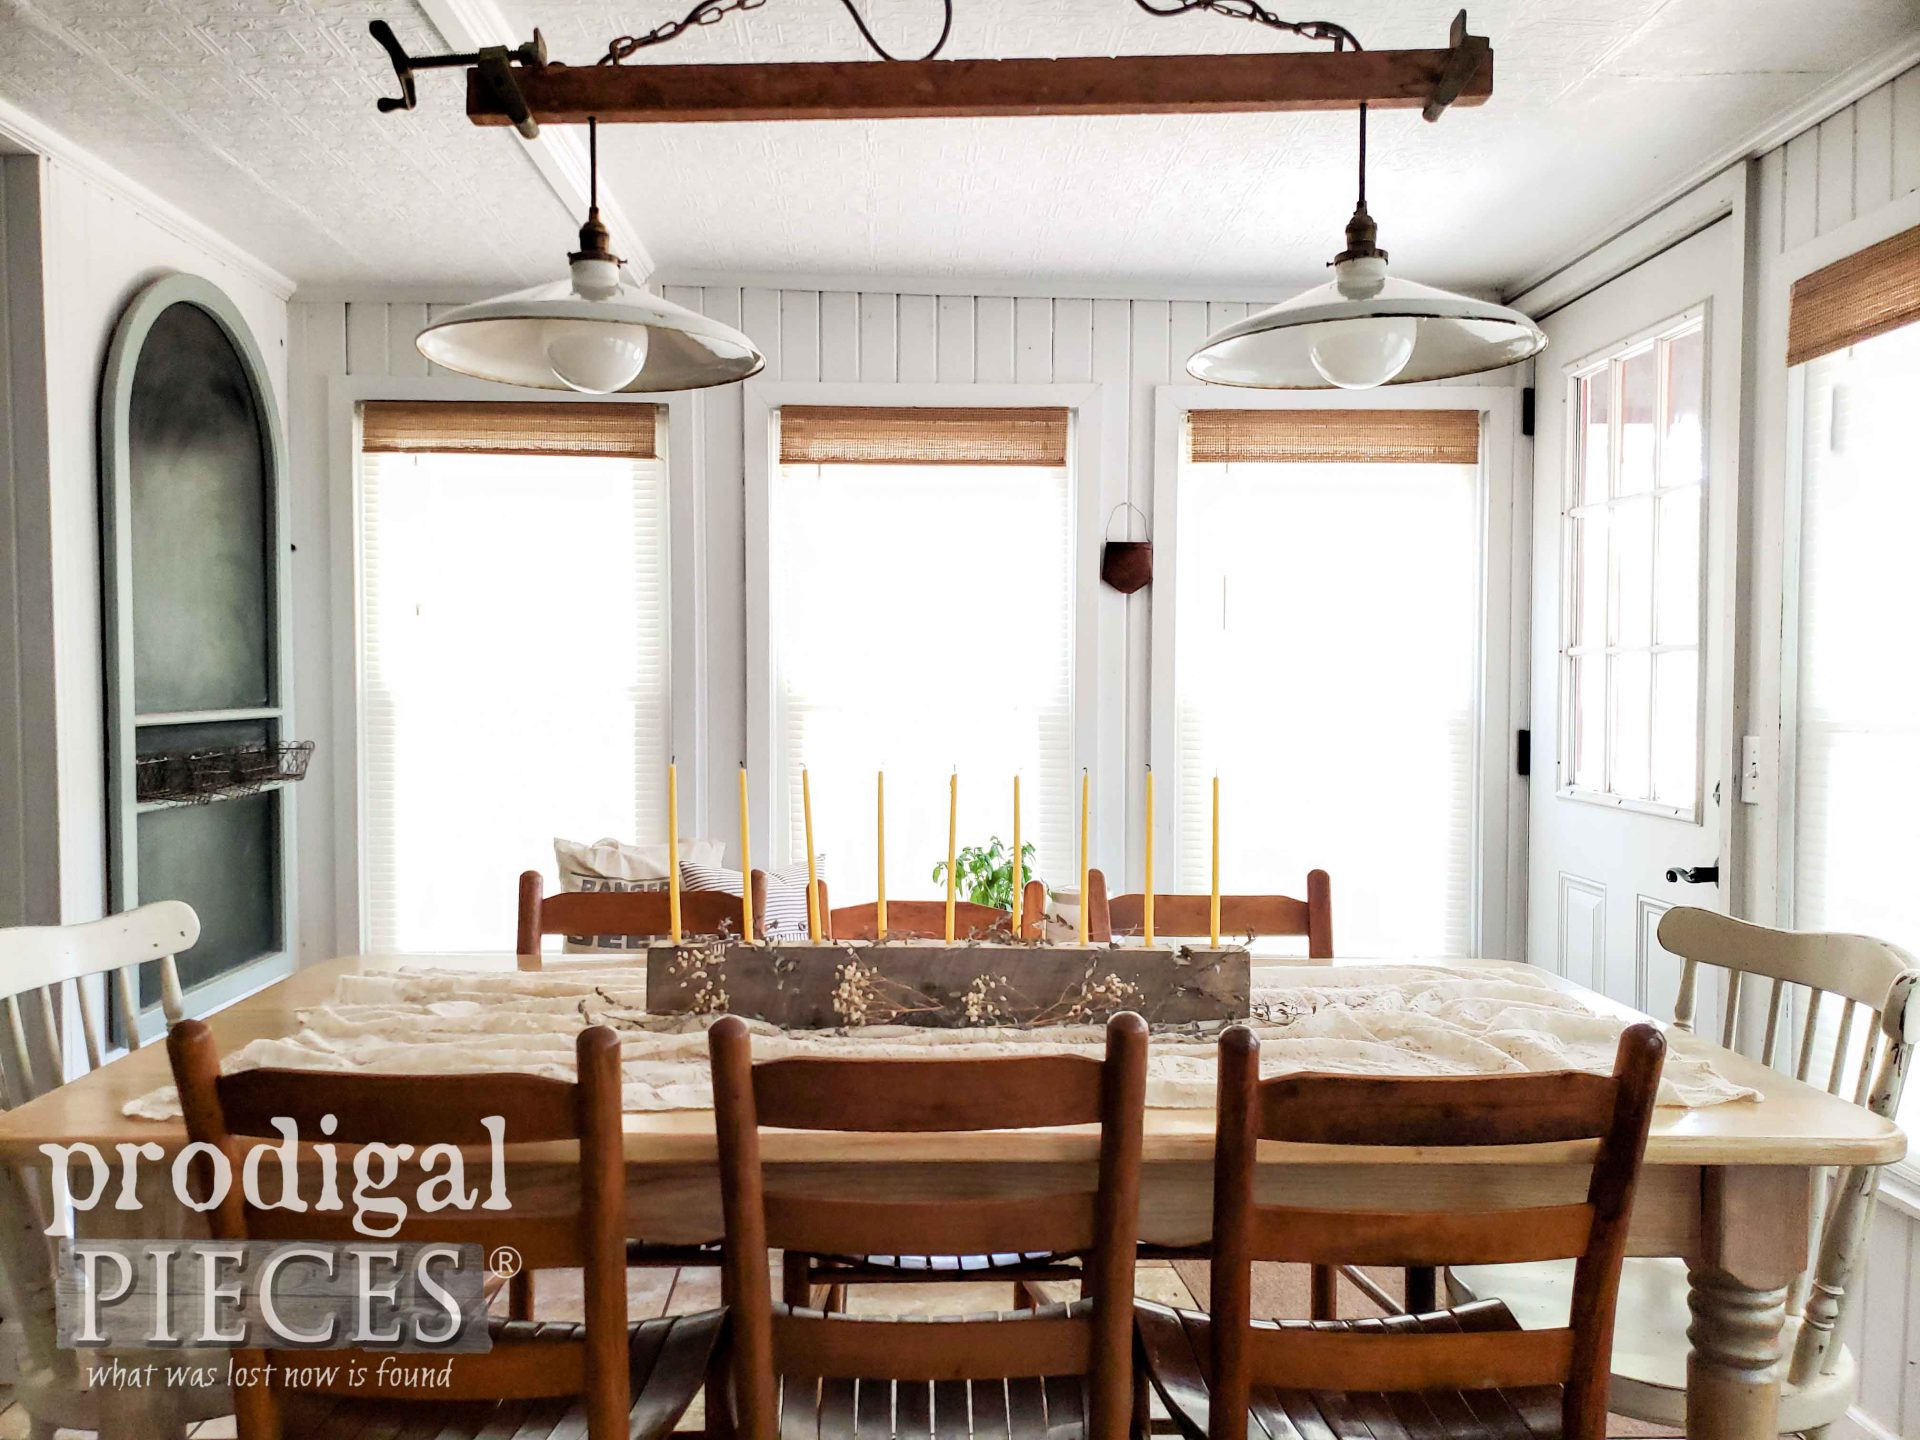 Simple Farmhouse Dining Table with Rustic Candle Centerpiece | prodigalpieces.com #prodigalpieces #dining #home #farmhouse #homedecor